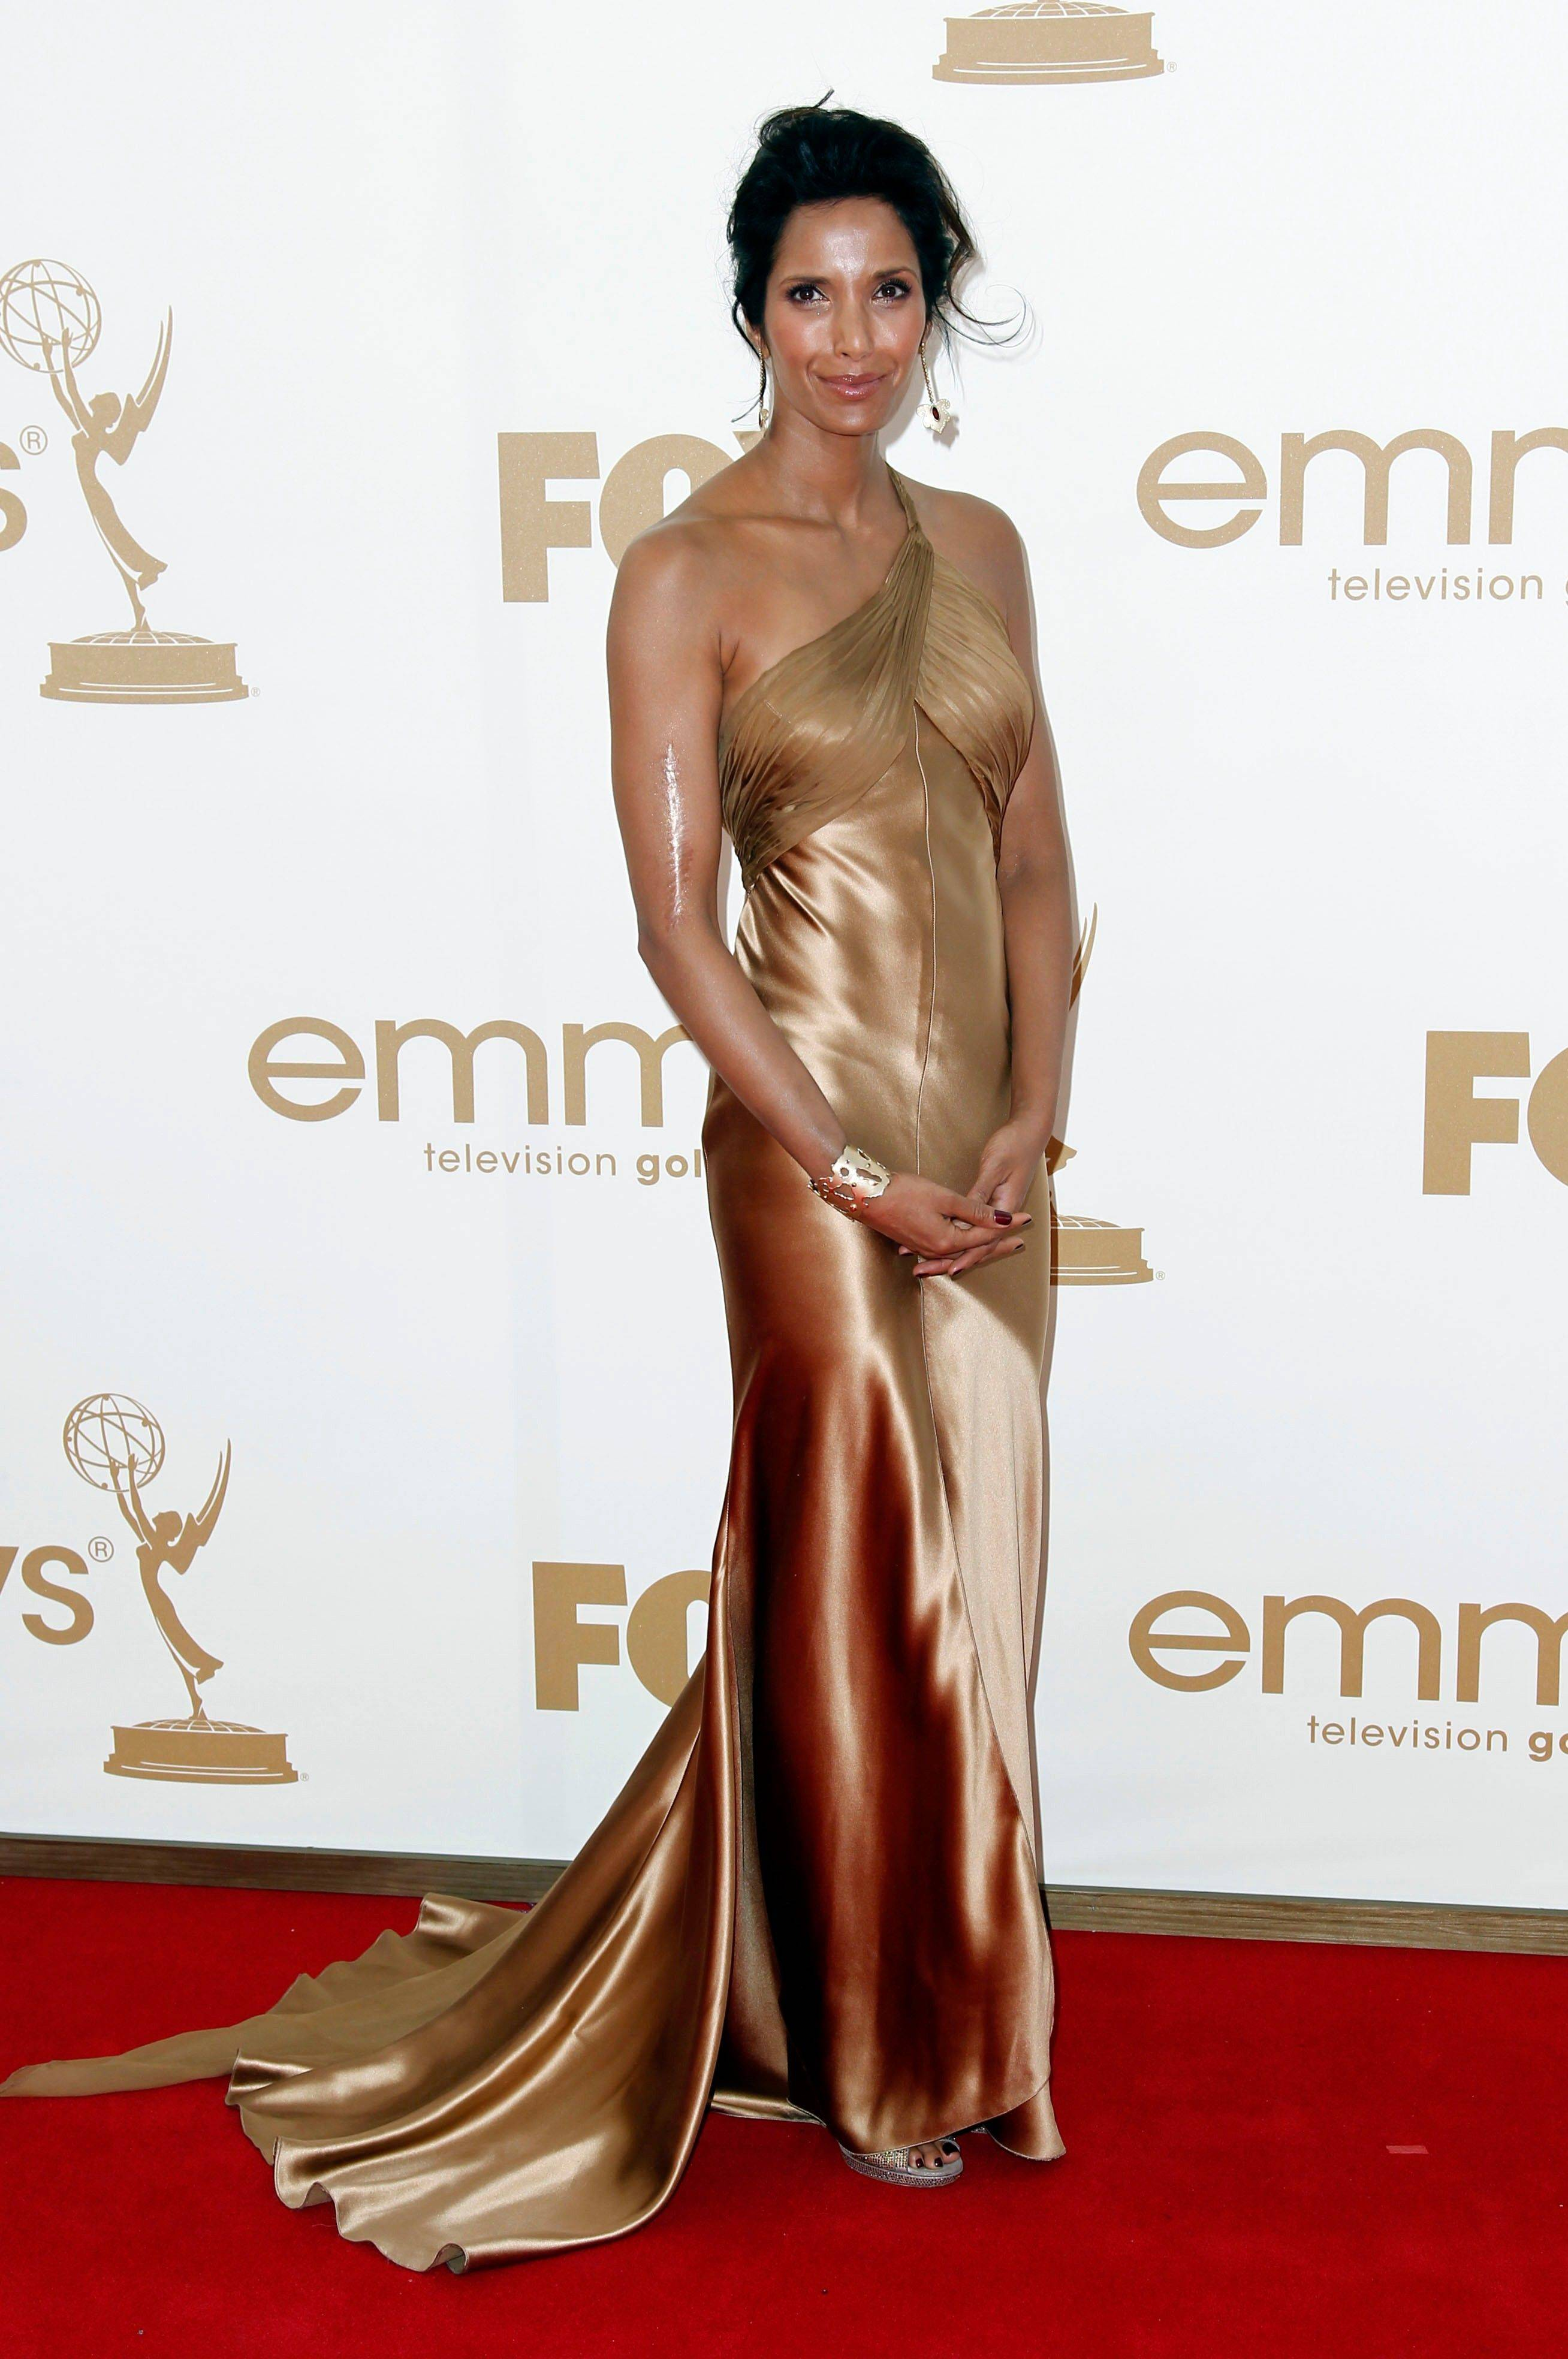 """Top Chef"" host Padma Lakshmi looks luminous in her Emmy gown. The TV star plays it a little safe staying with her usual style, but it pays off."